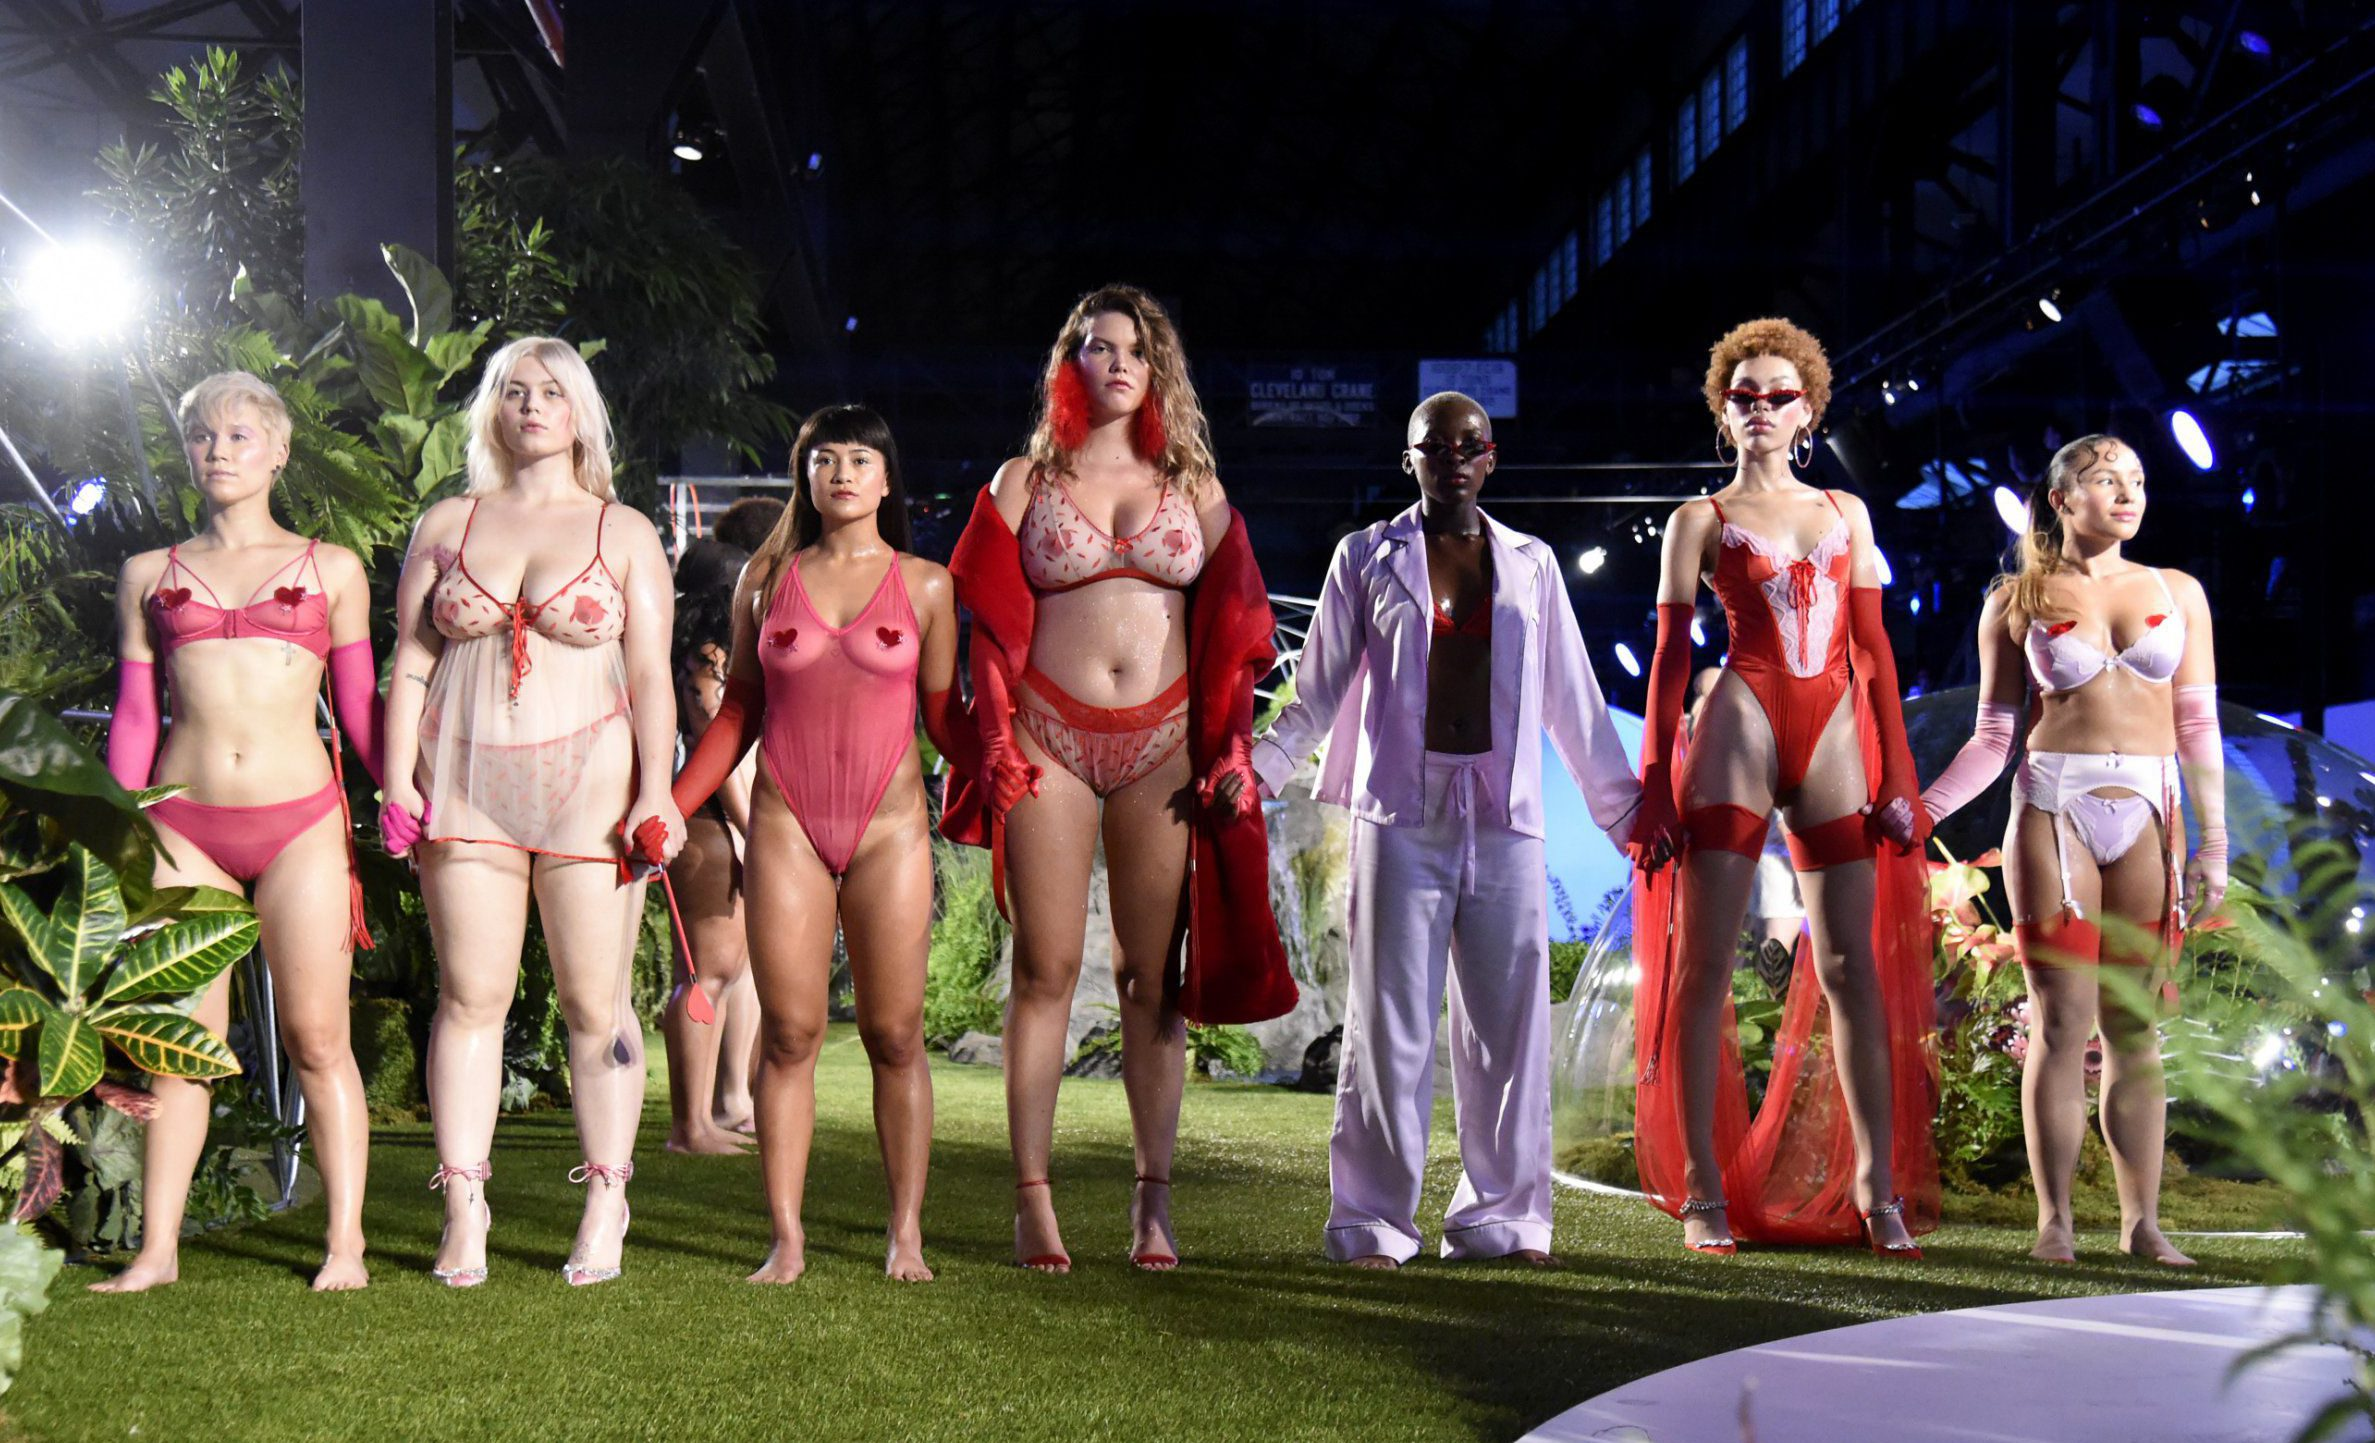 BROOKLYN, NY - SEPTEMBER 12: Models walk the runway for the Savage X Fenty Fall/Winter 2018 fashion show during NYFW at the Brooklyn Navy Yard on September 12, 2018 in Brooklyn, NY. (Photo by Kevin Mazur/Getty Images for Savage X Fenty)